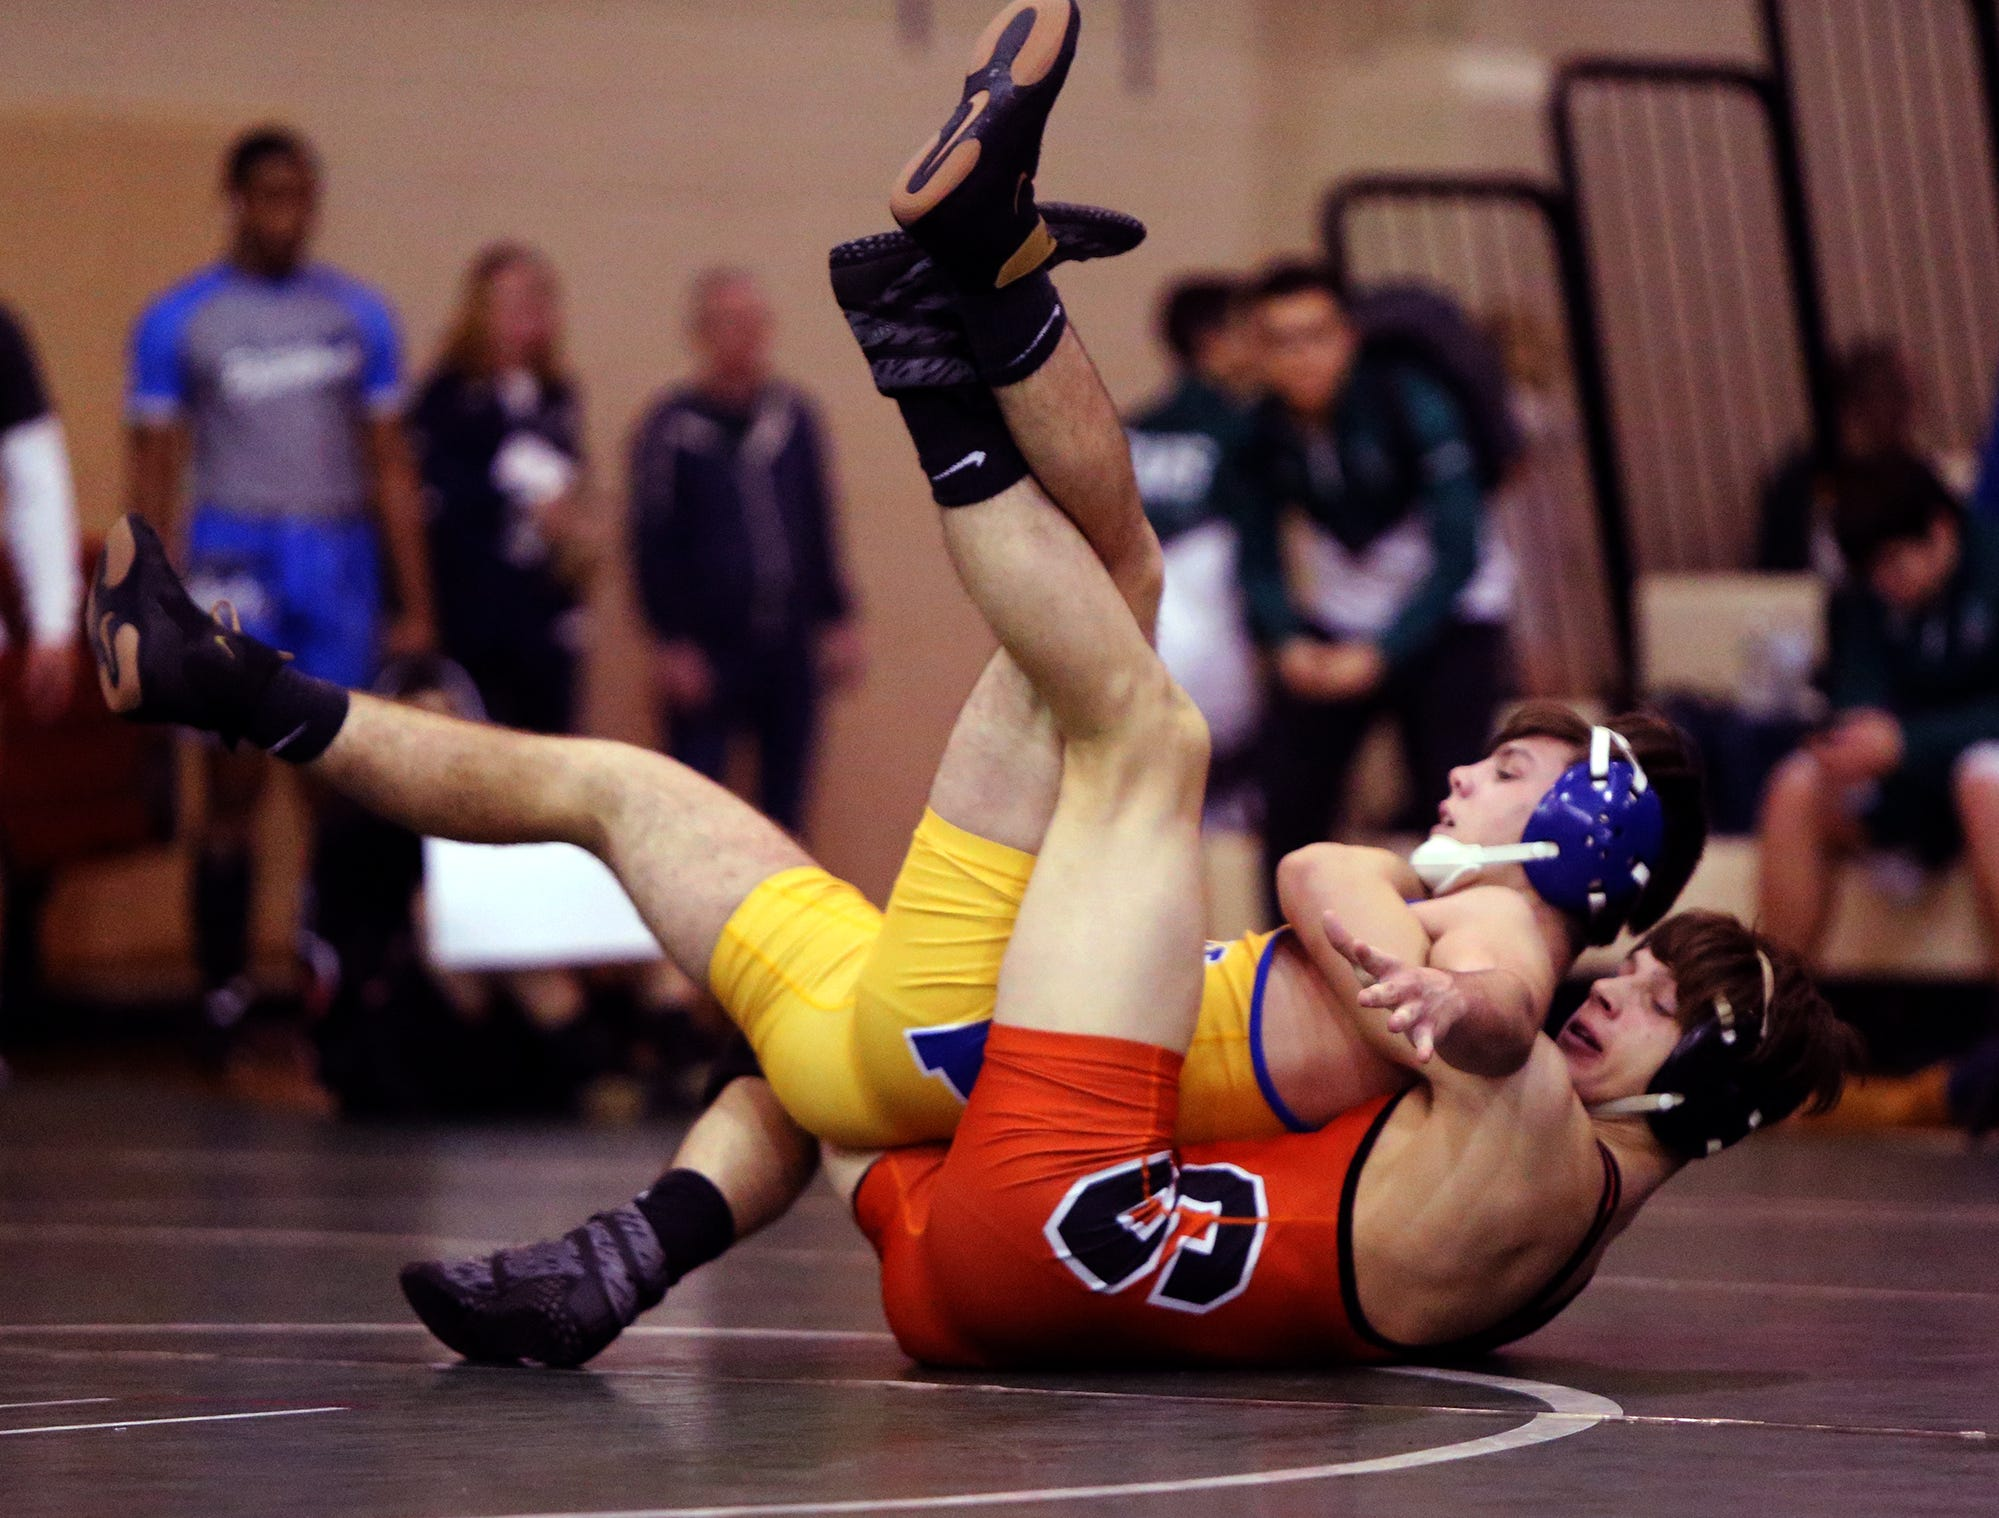 Bear Invitational wrestling tournament. Friday December 28, 2018 photo by Ed Pagliarini